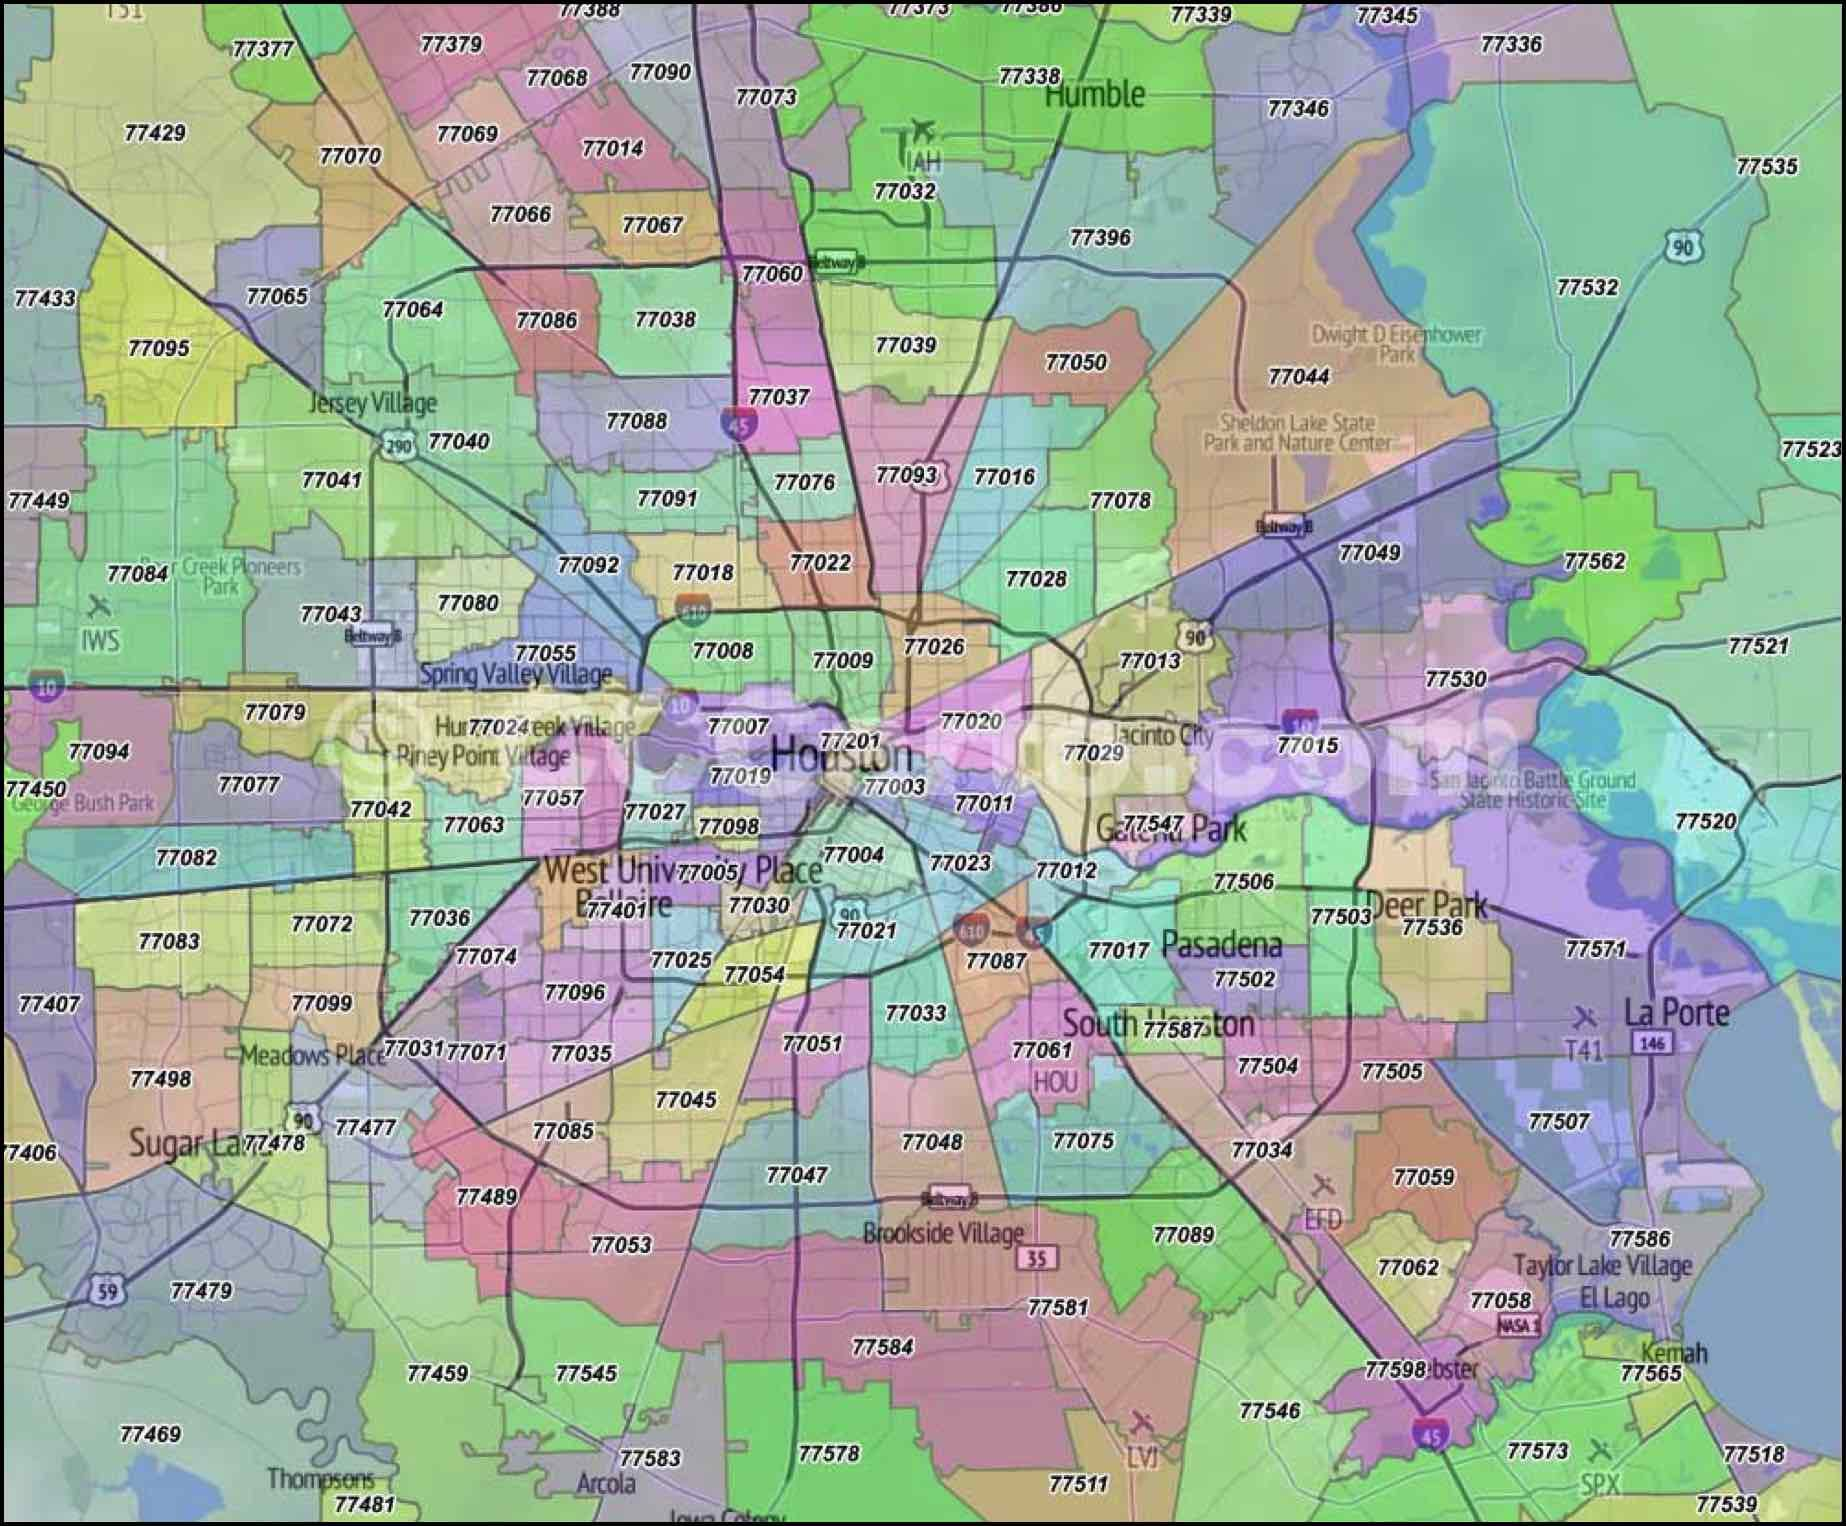 Houston Zip Codes Map Houston Zip Code Map | Houston Zip Code Map in 2019 | Zip code map